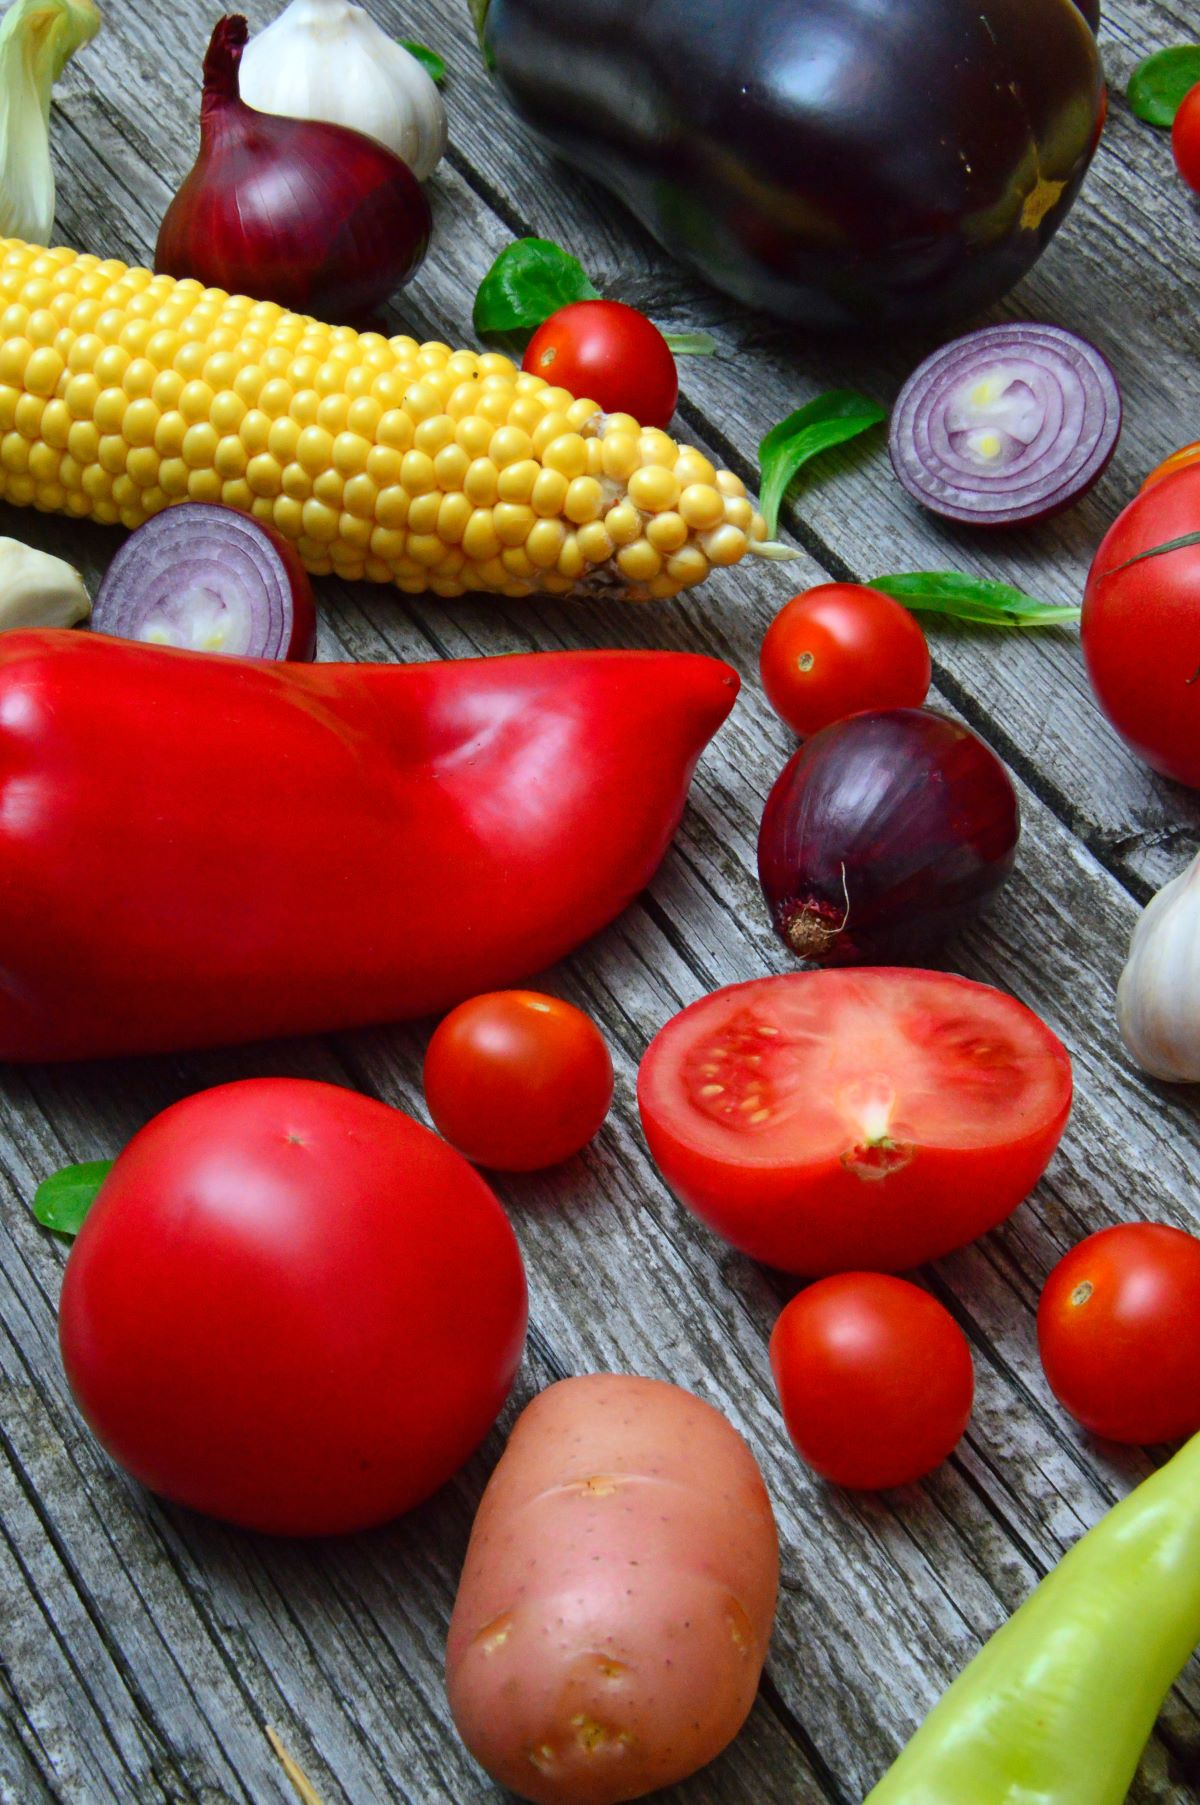 COLORFUL VEGETABLES SITTING ON A WOODEN TABLE INCLUDING, LARGE RED PEPPERS, RED ONION, TOMATOES, POTATO, GARLIC, CORN, BASIL LEAVES, AND EGGPLANT